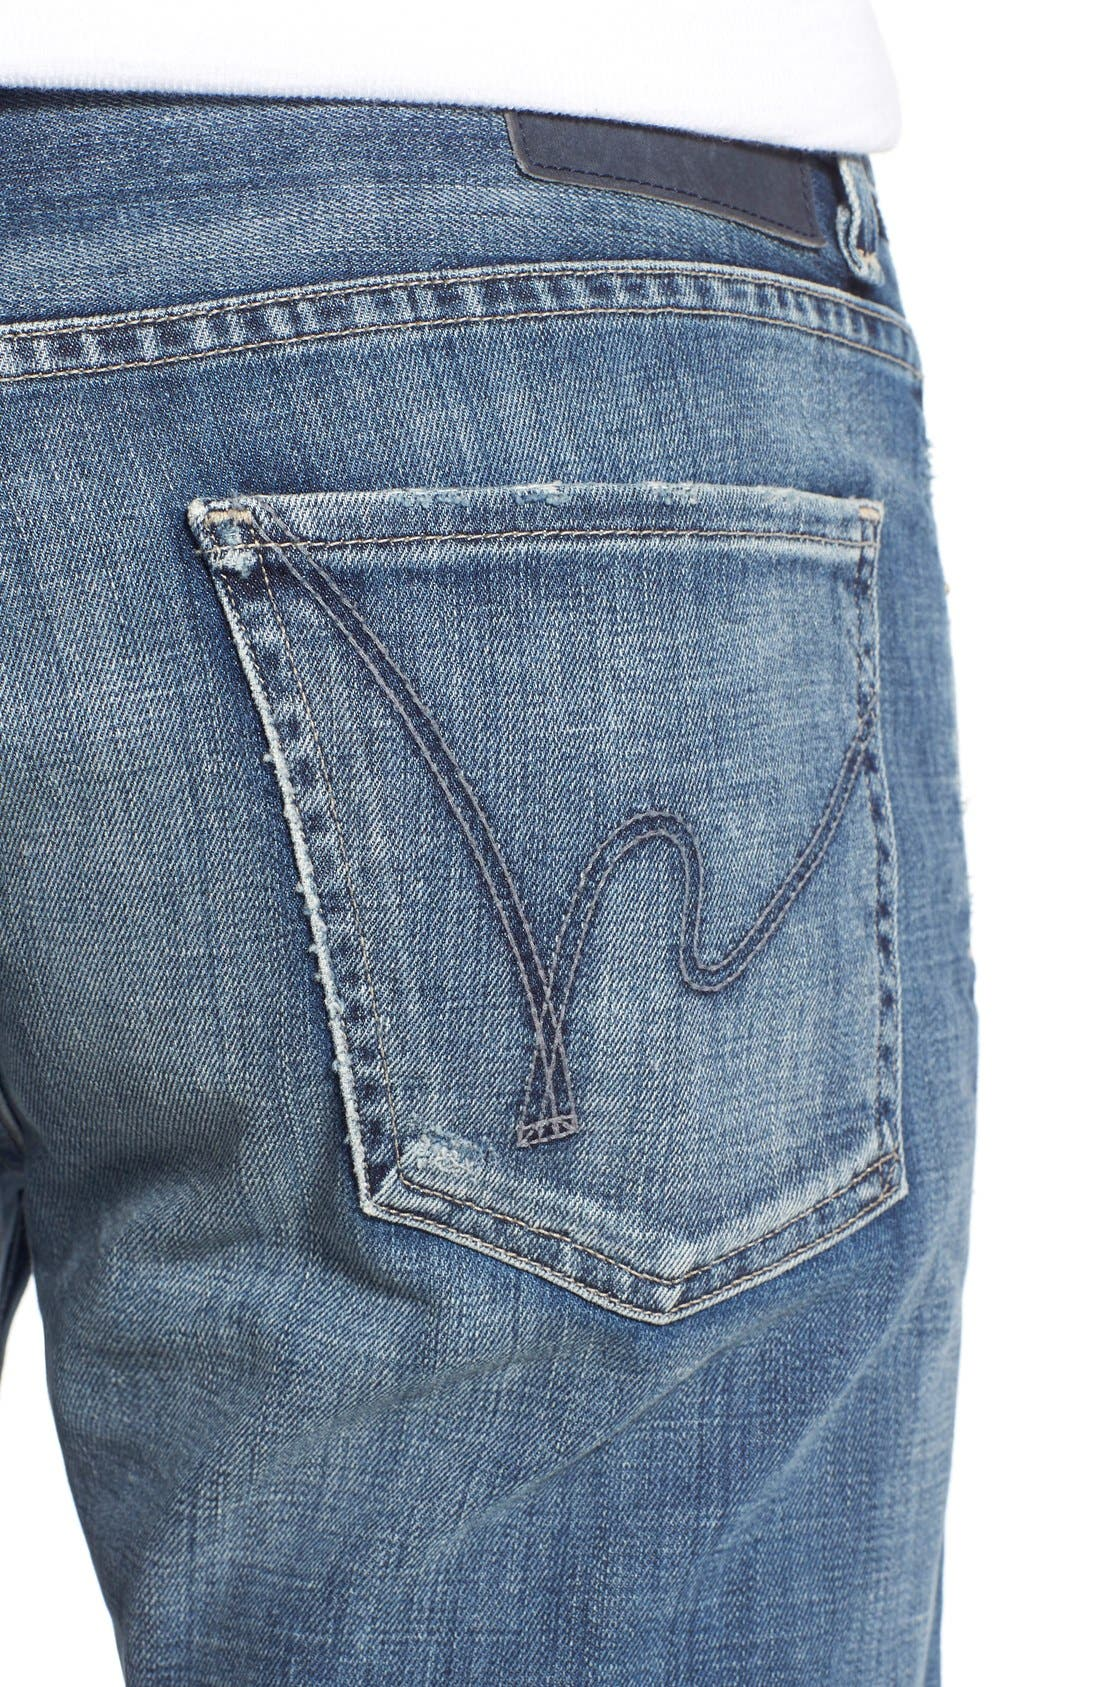 'Sid' Straight Leg Jeans,                             Alternate thumbnail 4, color,                             Ripley